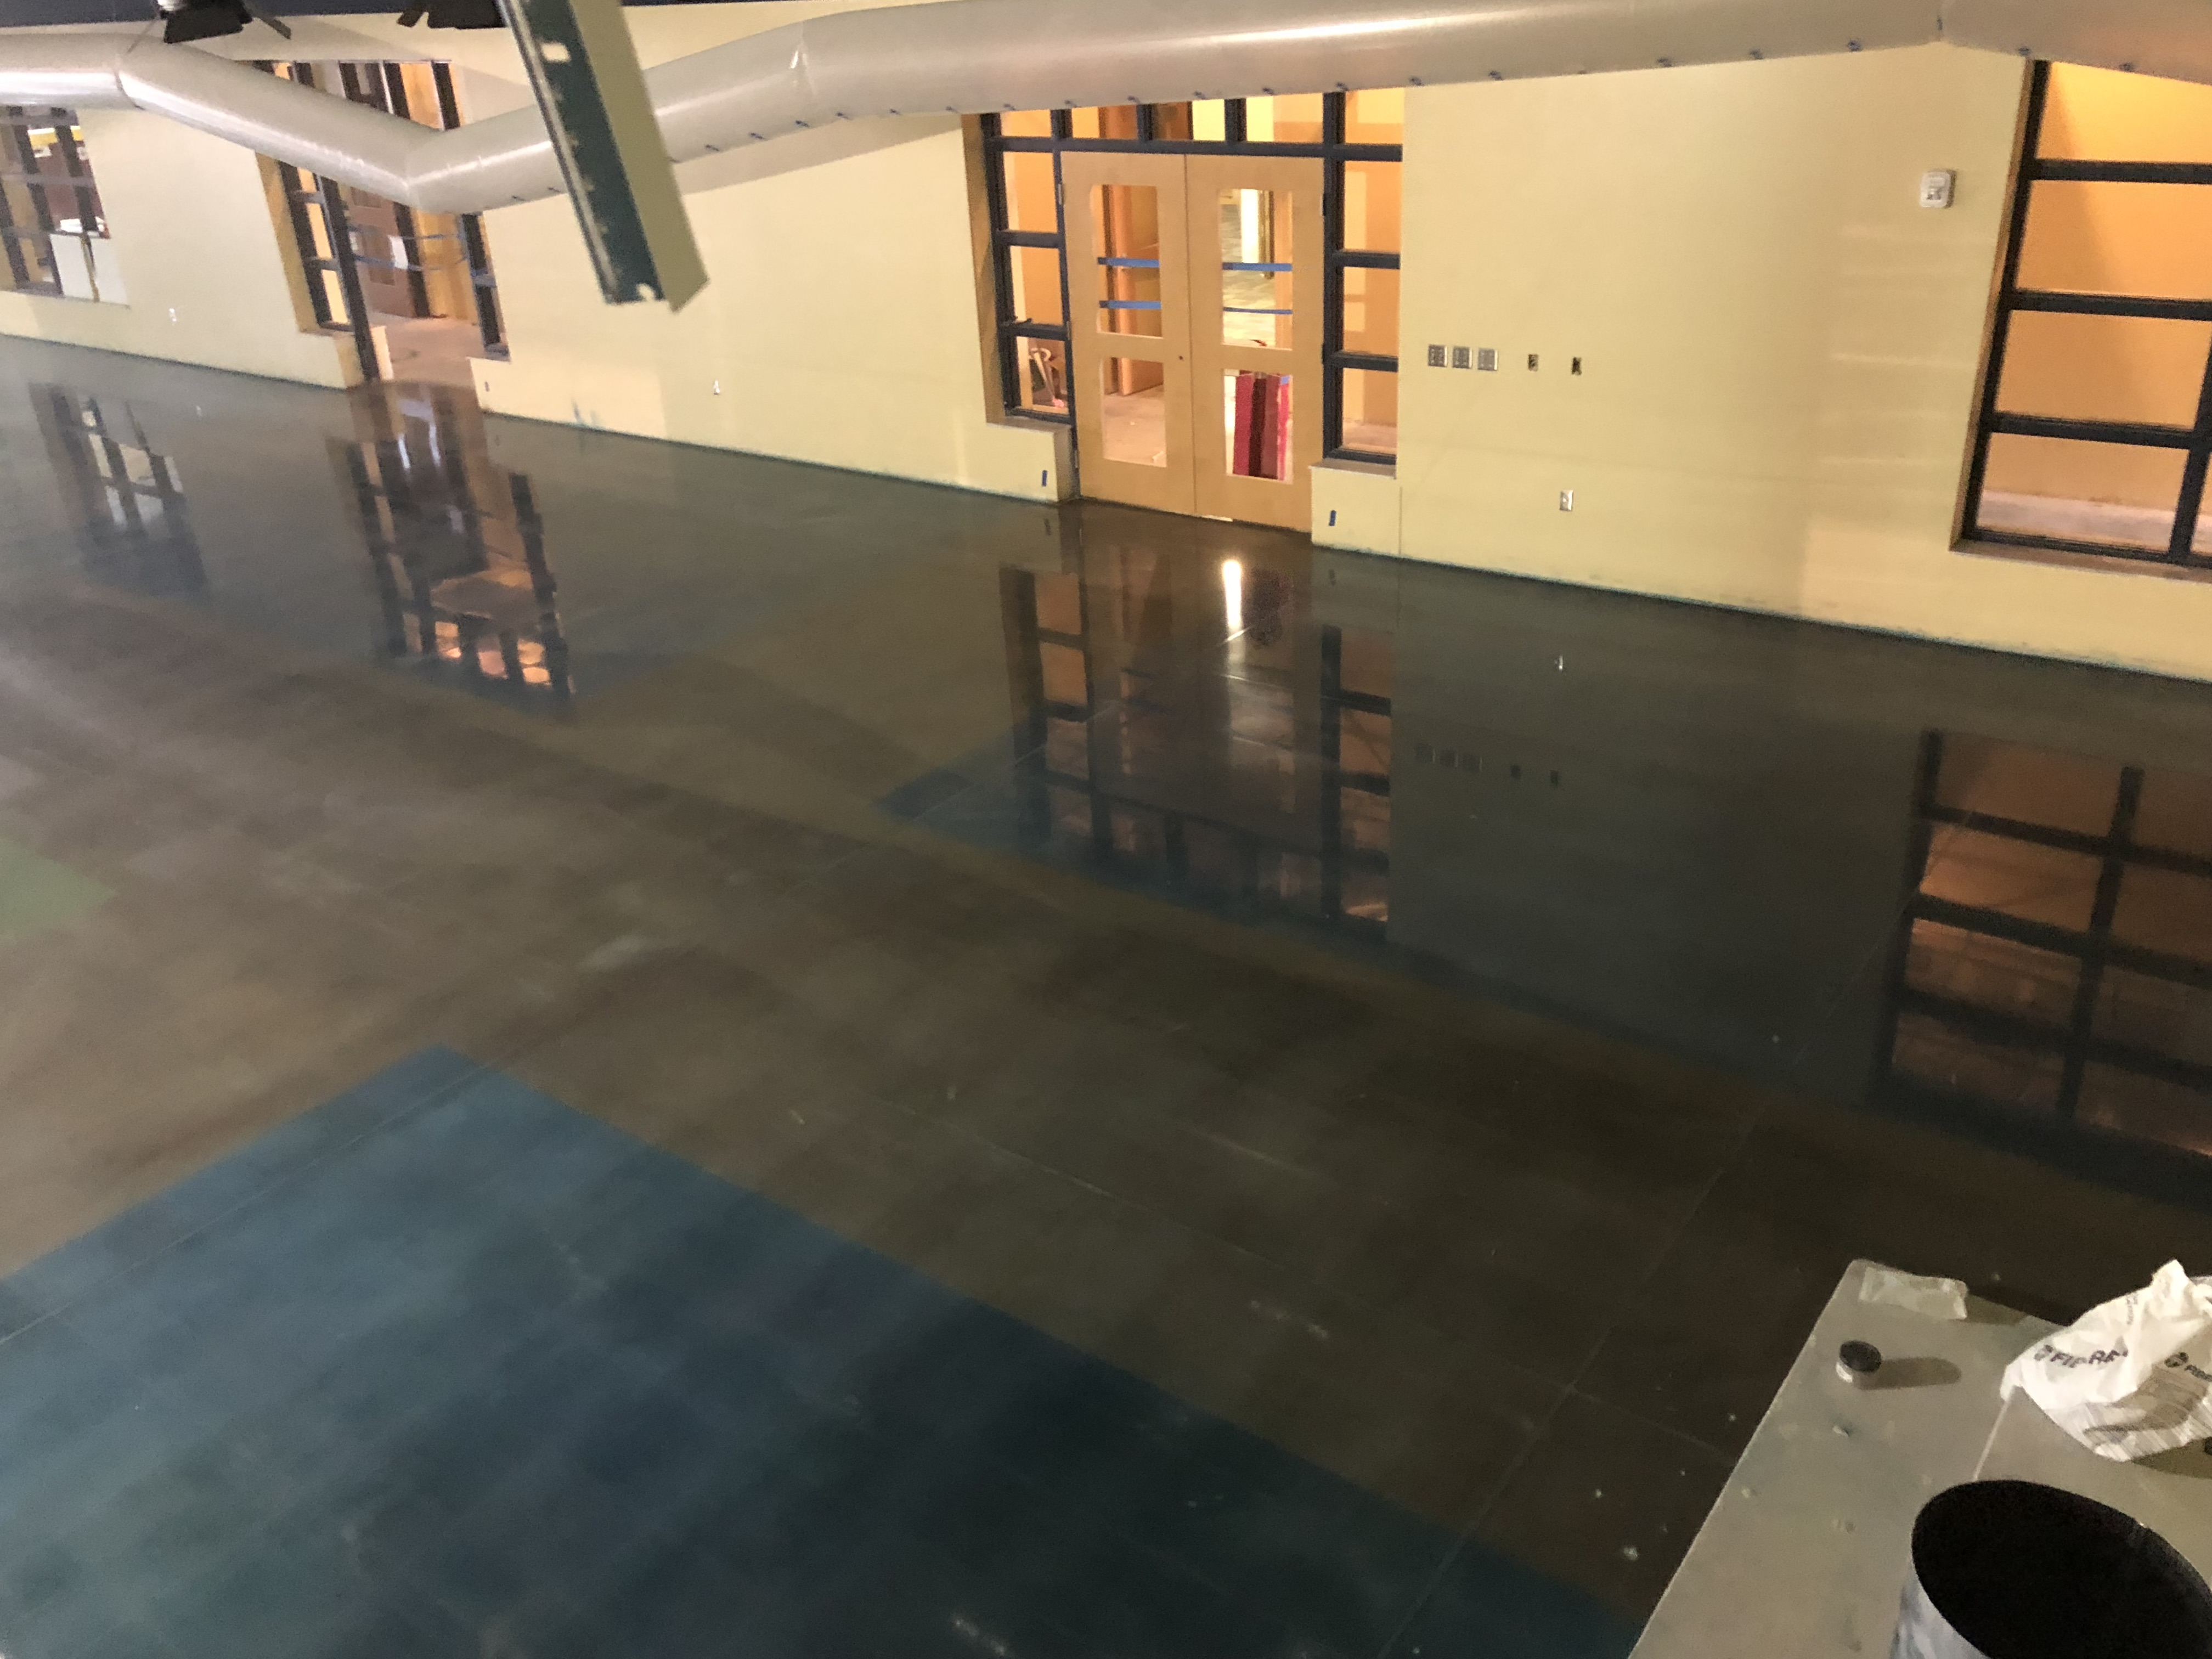 A betuifully polished concrete floor showing a decorative brown and blue pattern.